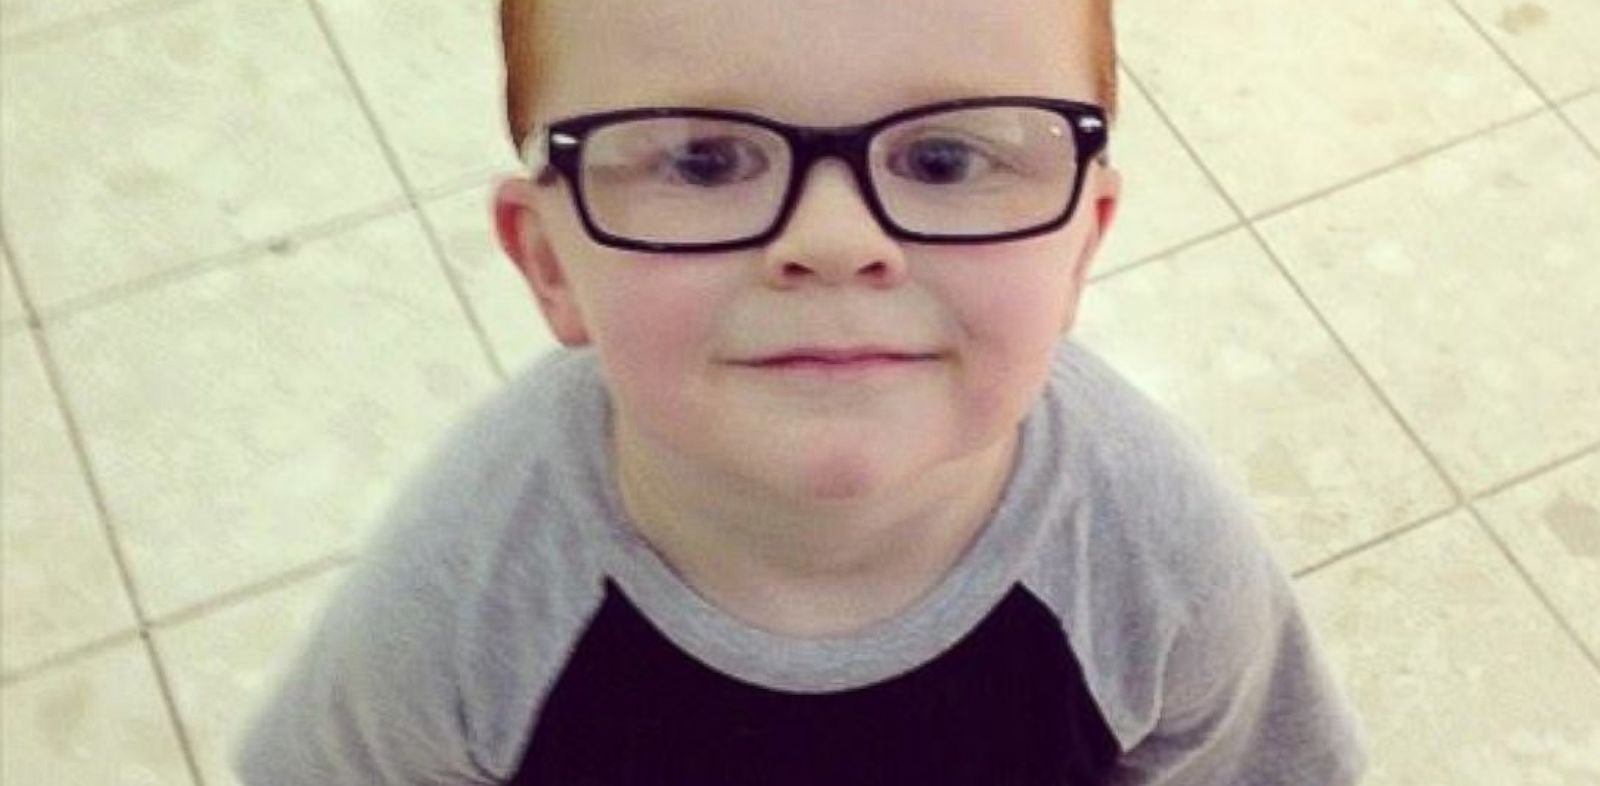 PHOTO: A mom turns to Facebook users to help her son feel better about his new glasses.